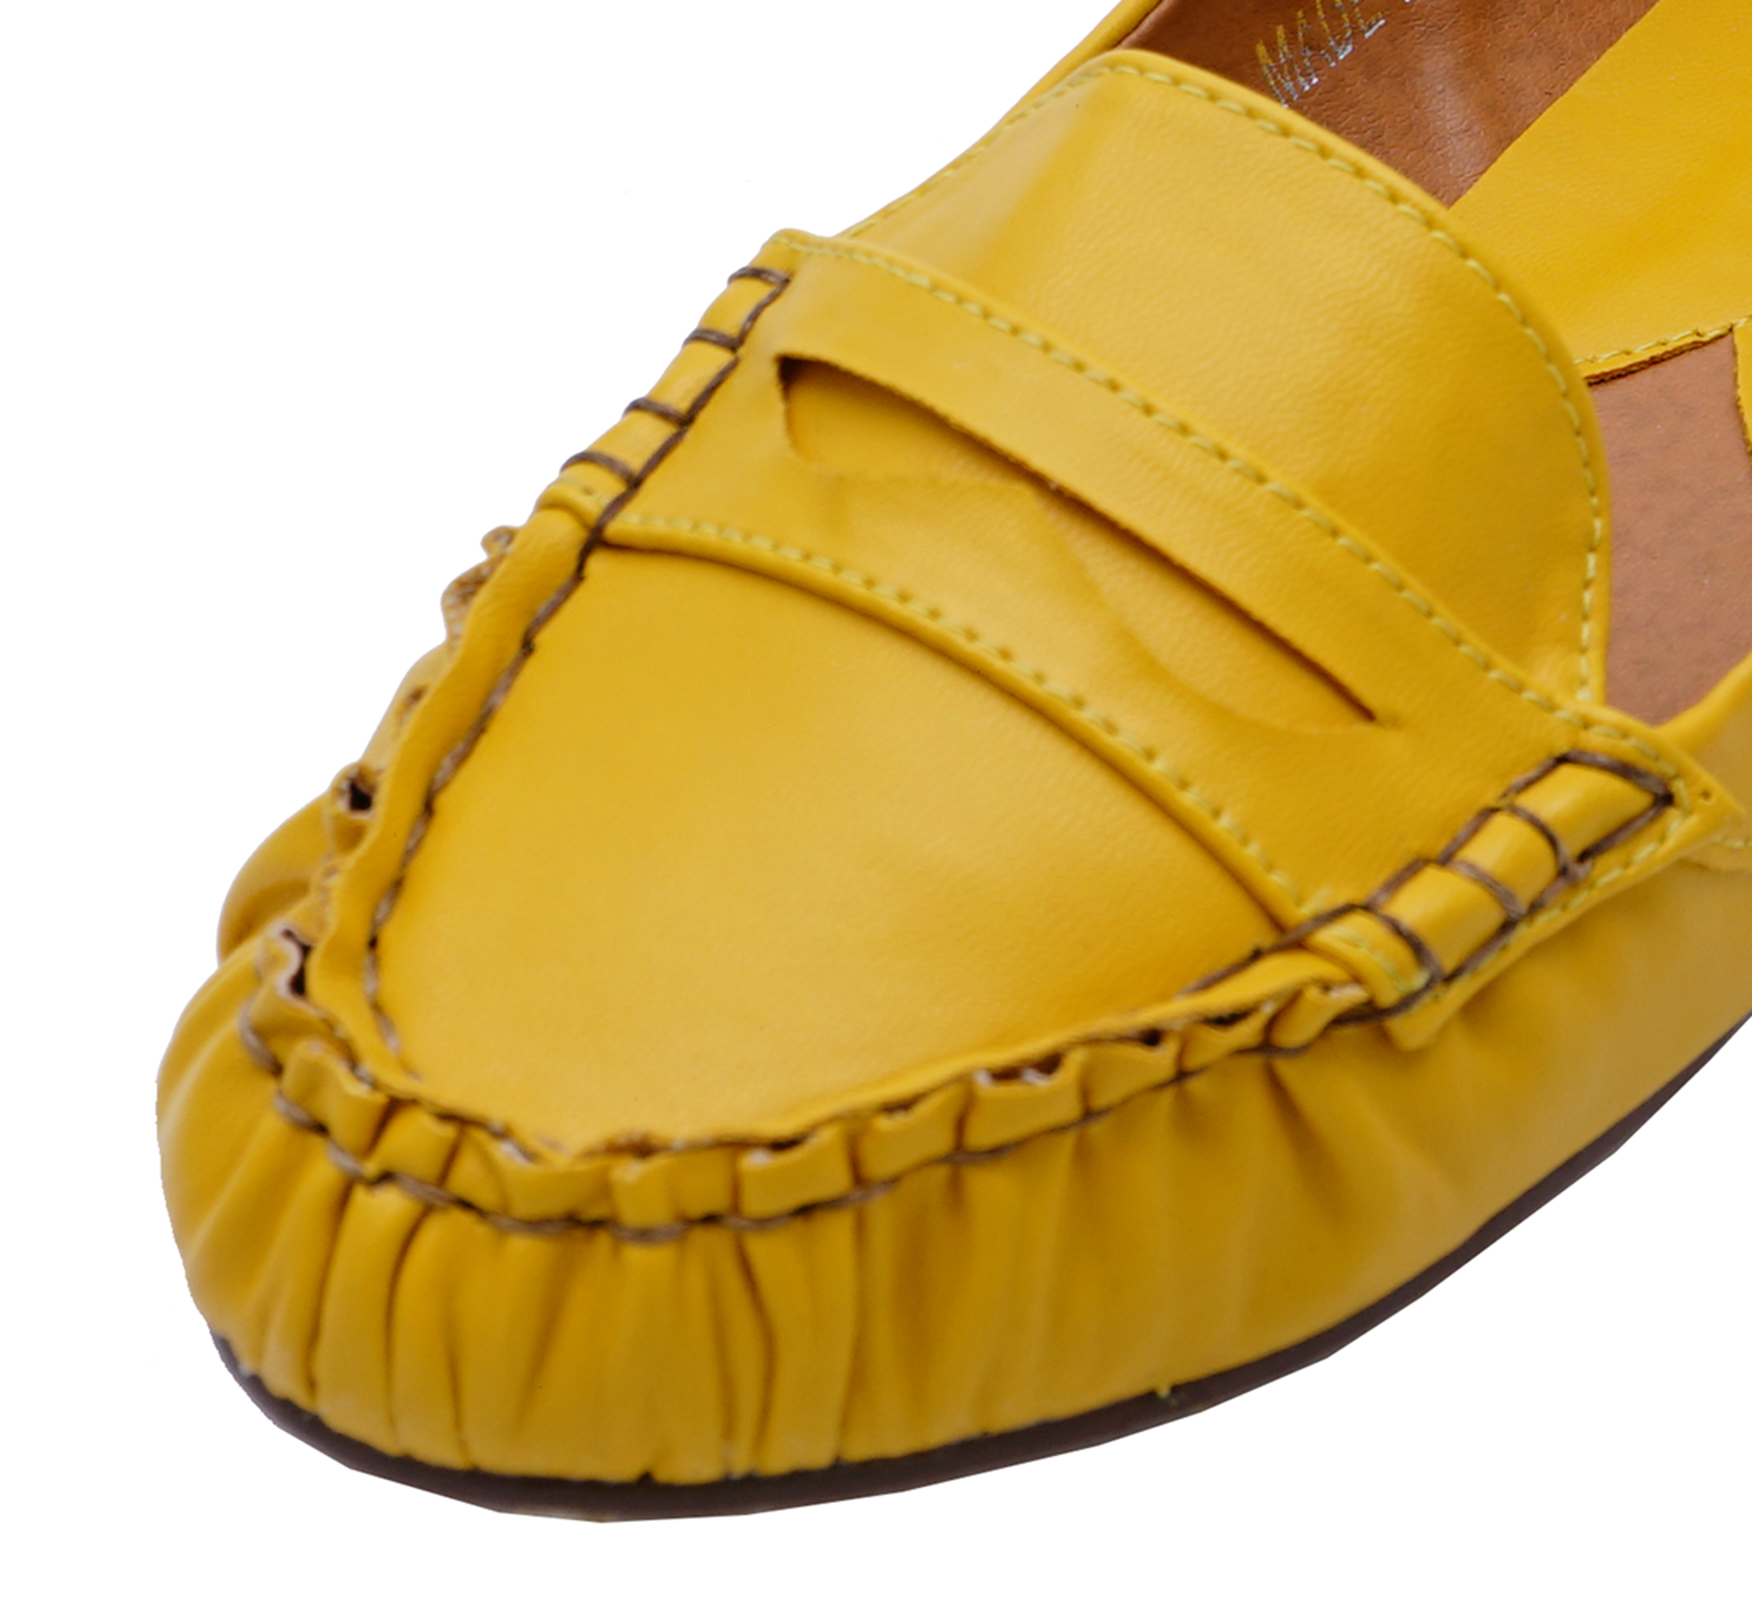 LADIES YELLOW FLAT SLIP-ON LOAFERS SMART COMFY WORK MOCCASIN SHOES PUMPS 3-8